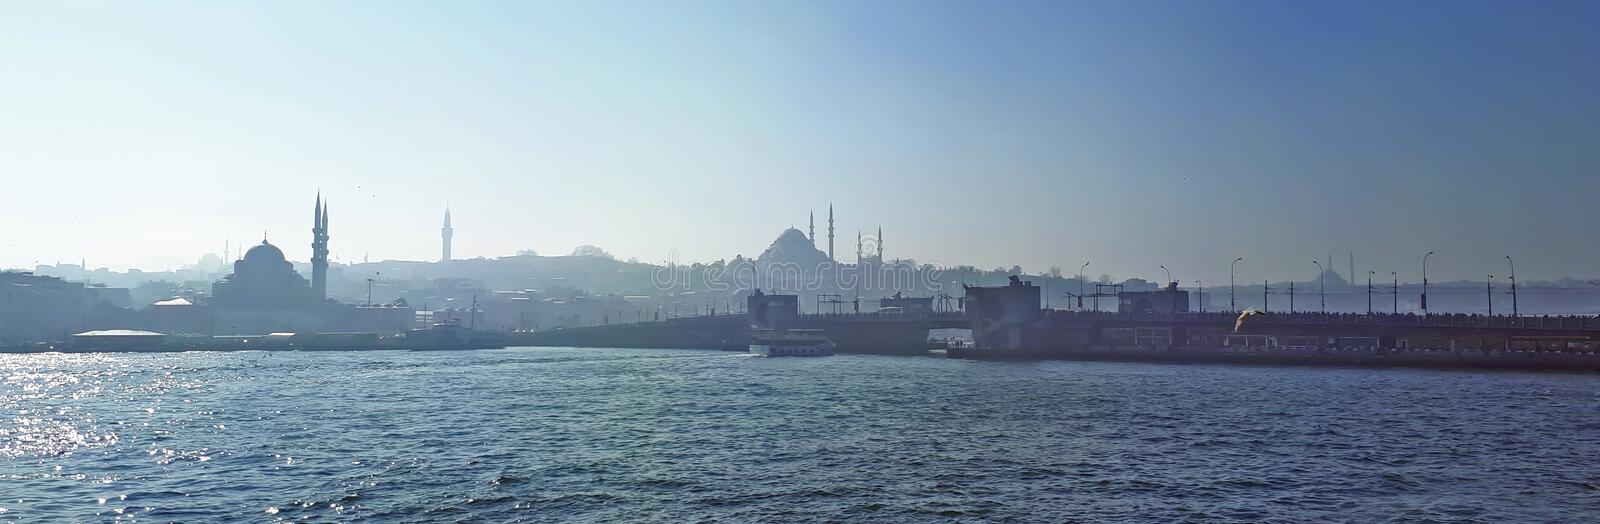 Istanbul mosques and galata bridge silhoutte stock photo